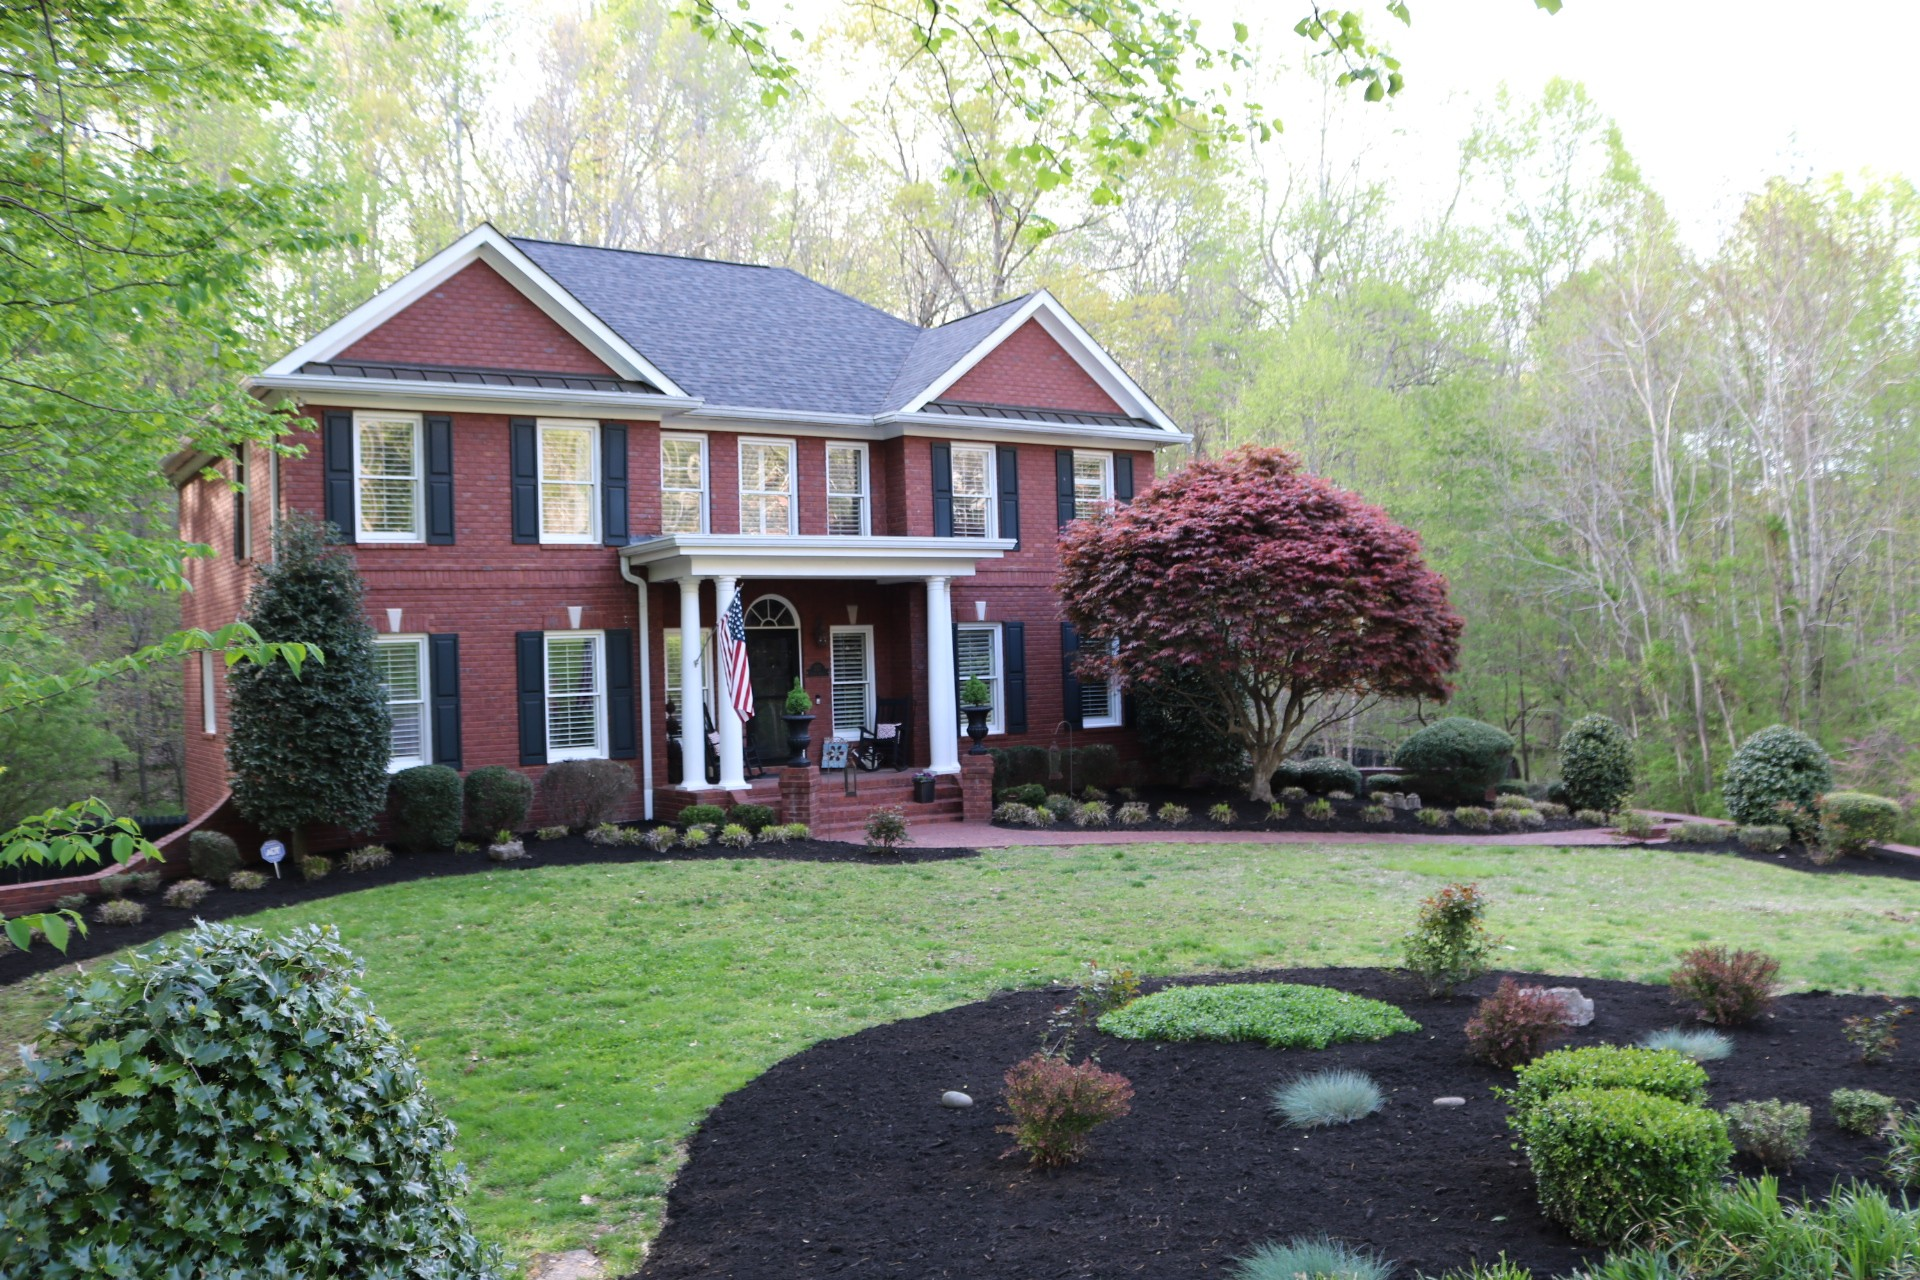 257 Scenic Dr Property Photo - Dickson, TN real estate listing